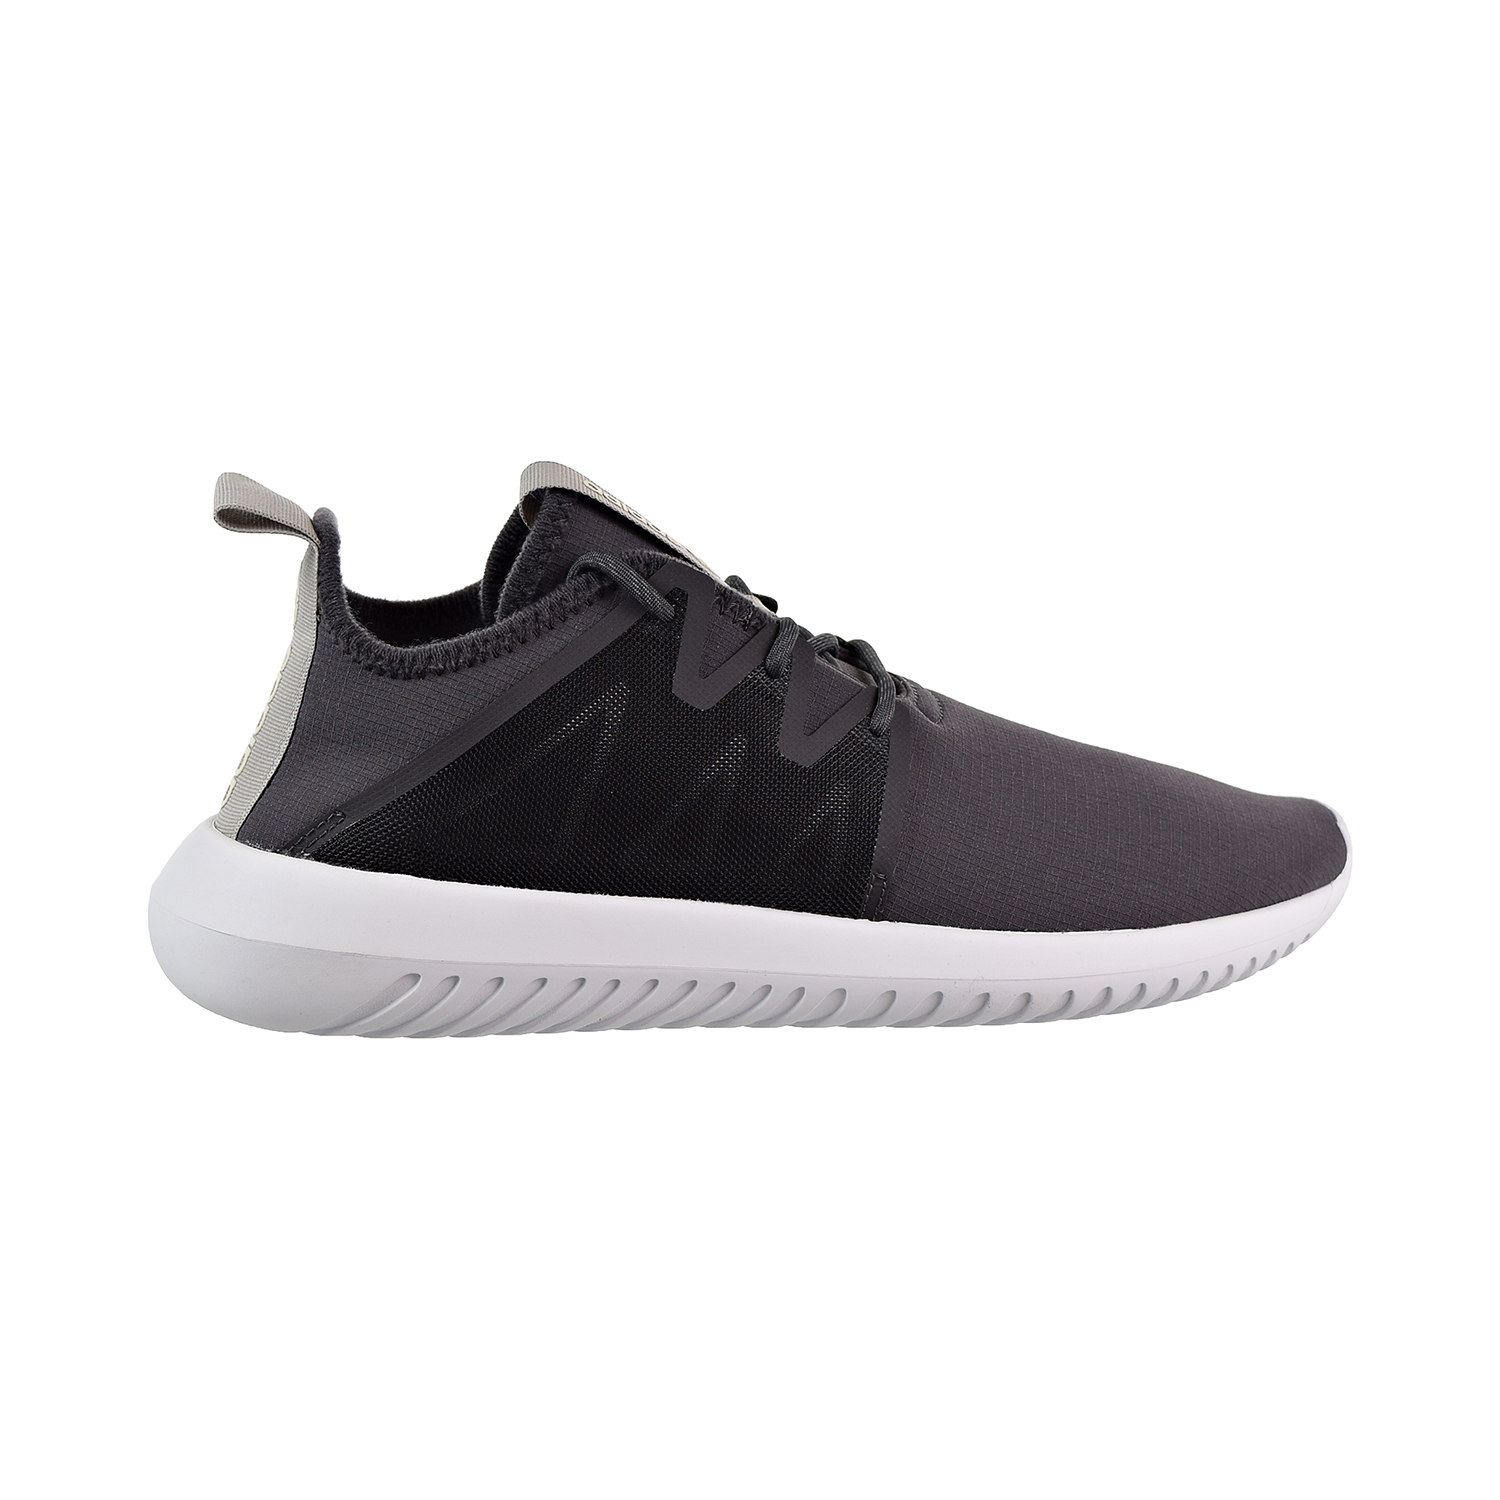 best shoes super quality cheap price Details about Adidas Tubular Viral 2 Women's Shoes Utility Black-Core  Black-White BY9745